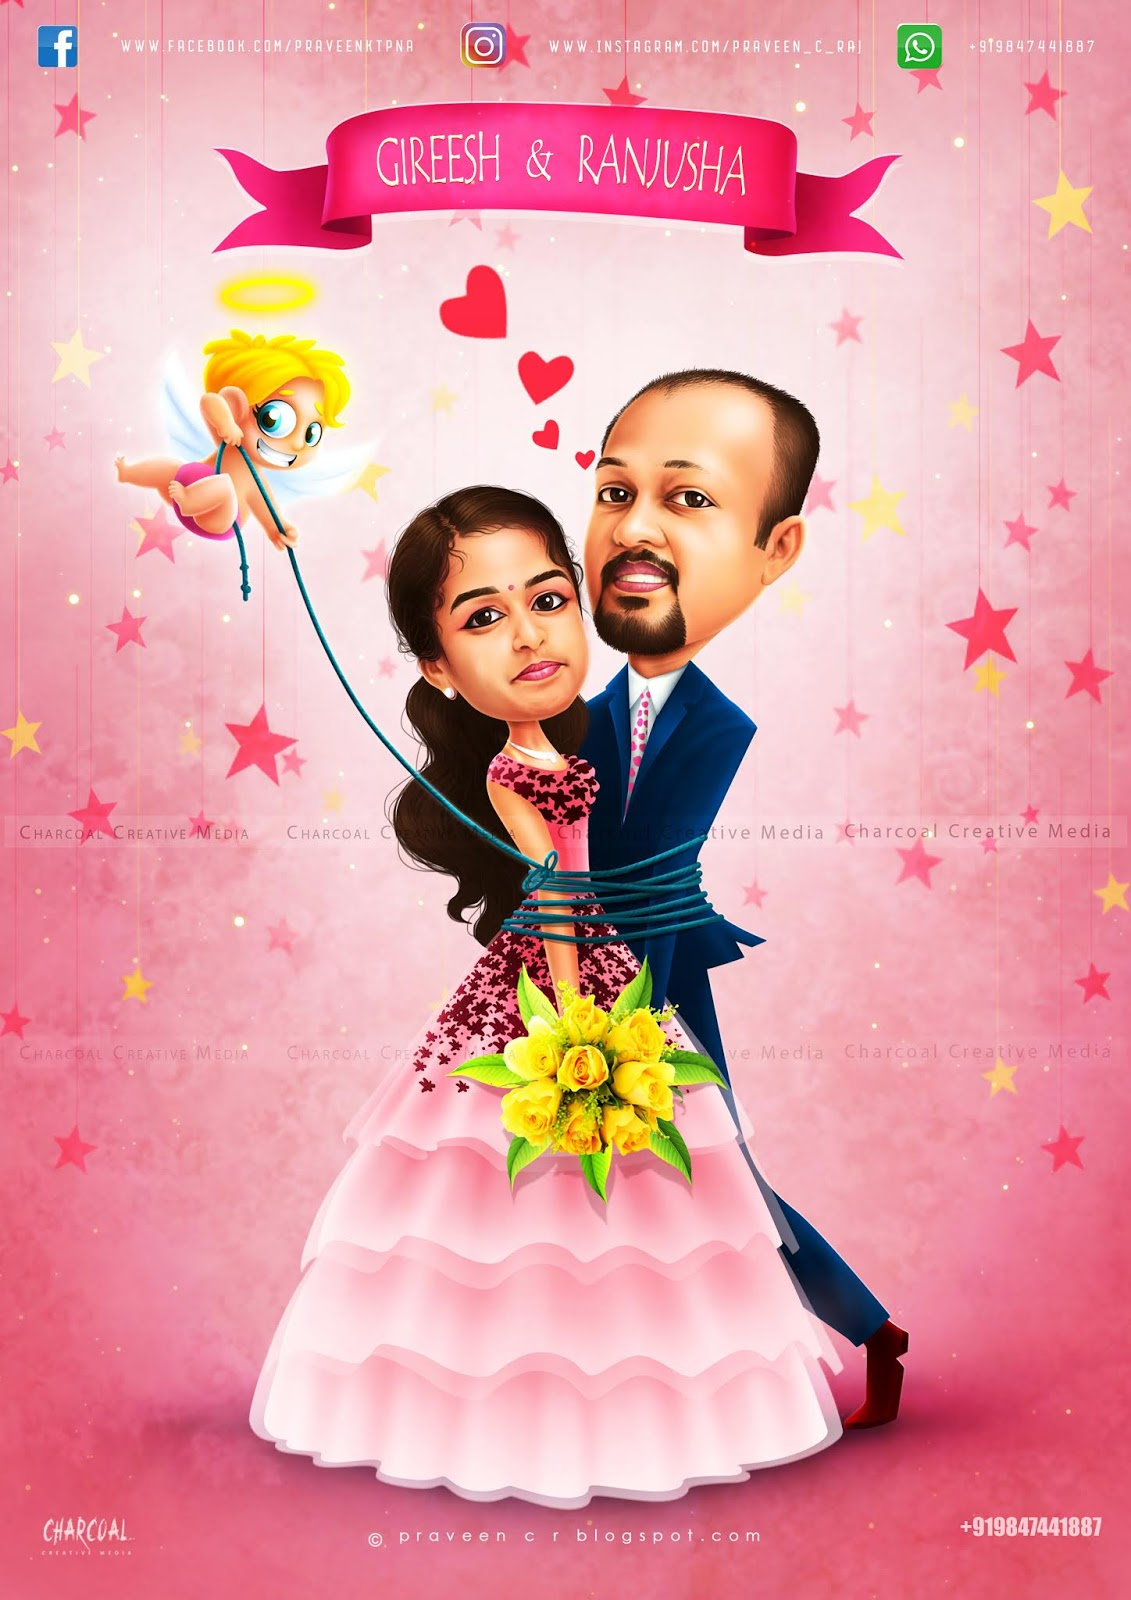 Praveen C R Wedding Caricature Work Invitation Card Design